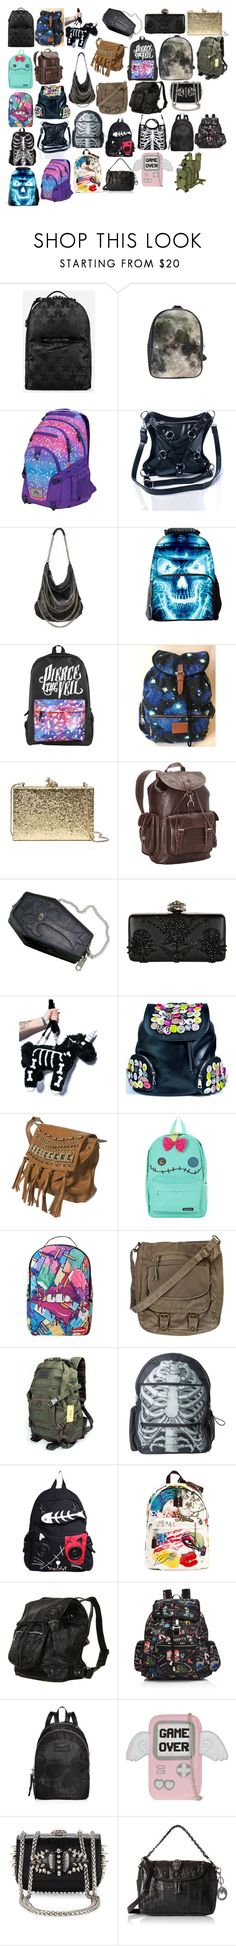 """""""Bags 24"""" by spellcasters ❤ liked on Polyvore featuring Actual Pain, High Sierra, Current Mood, Magali Pascal, Hot Topic, Victoria's Secret, Kate Spade, Ropin West, Alexander McQueen and Topshop"""